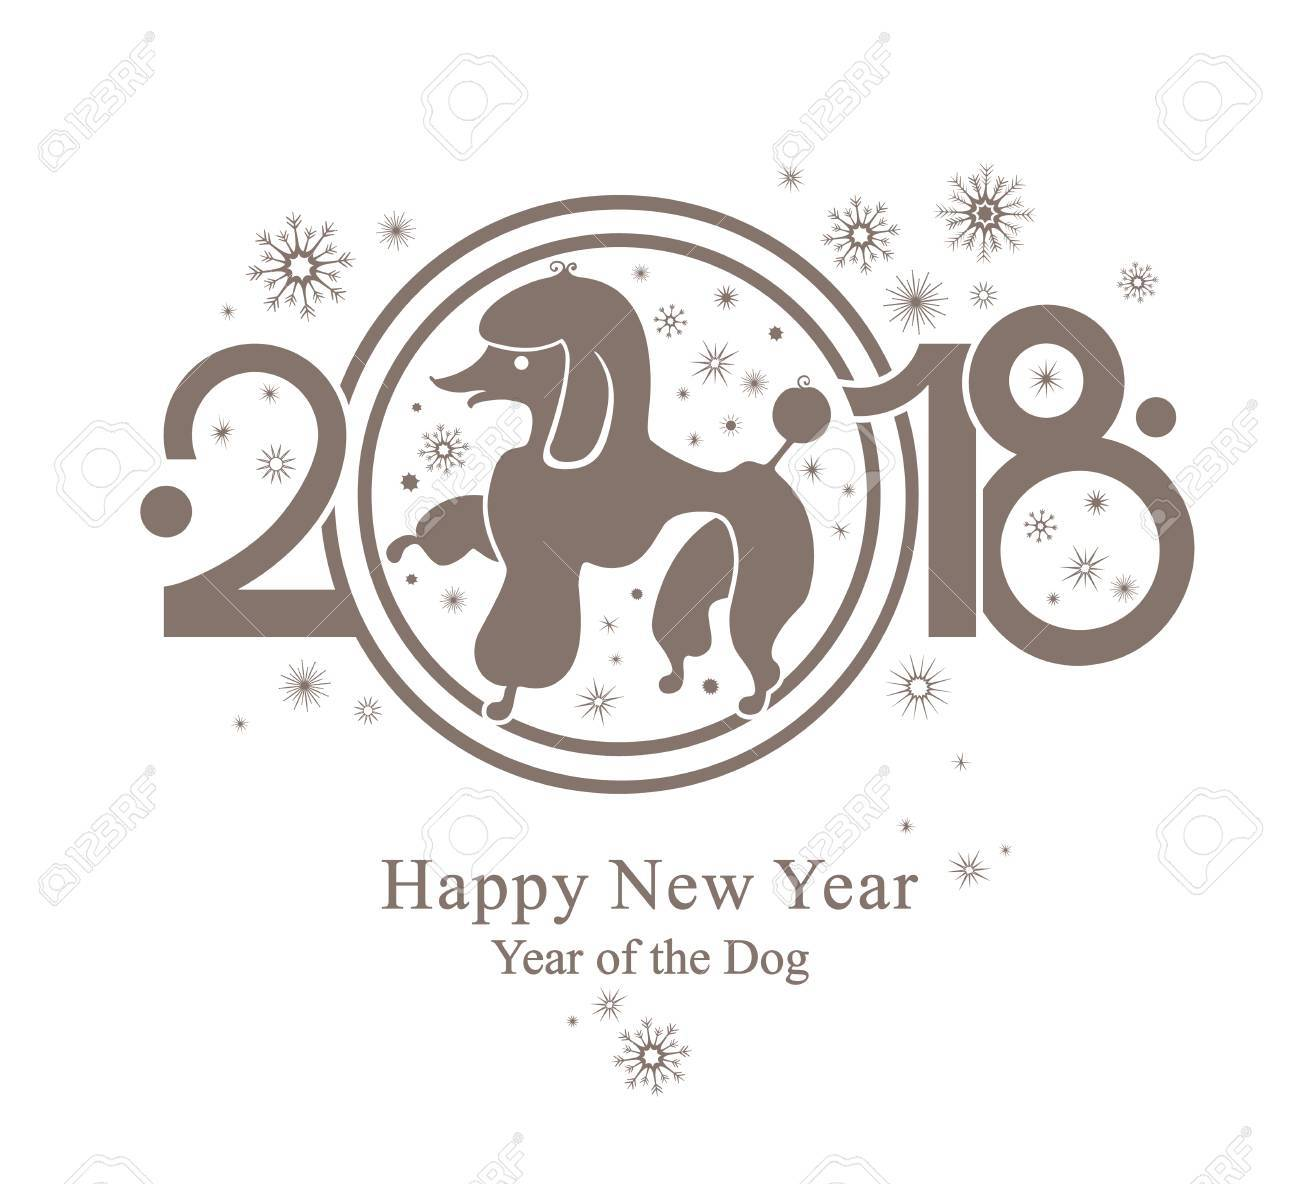 2018 dog new year template stock vector 89244542